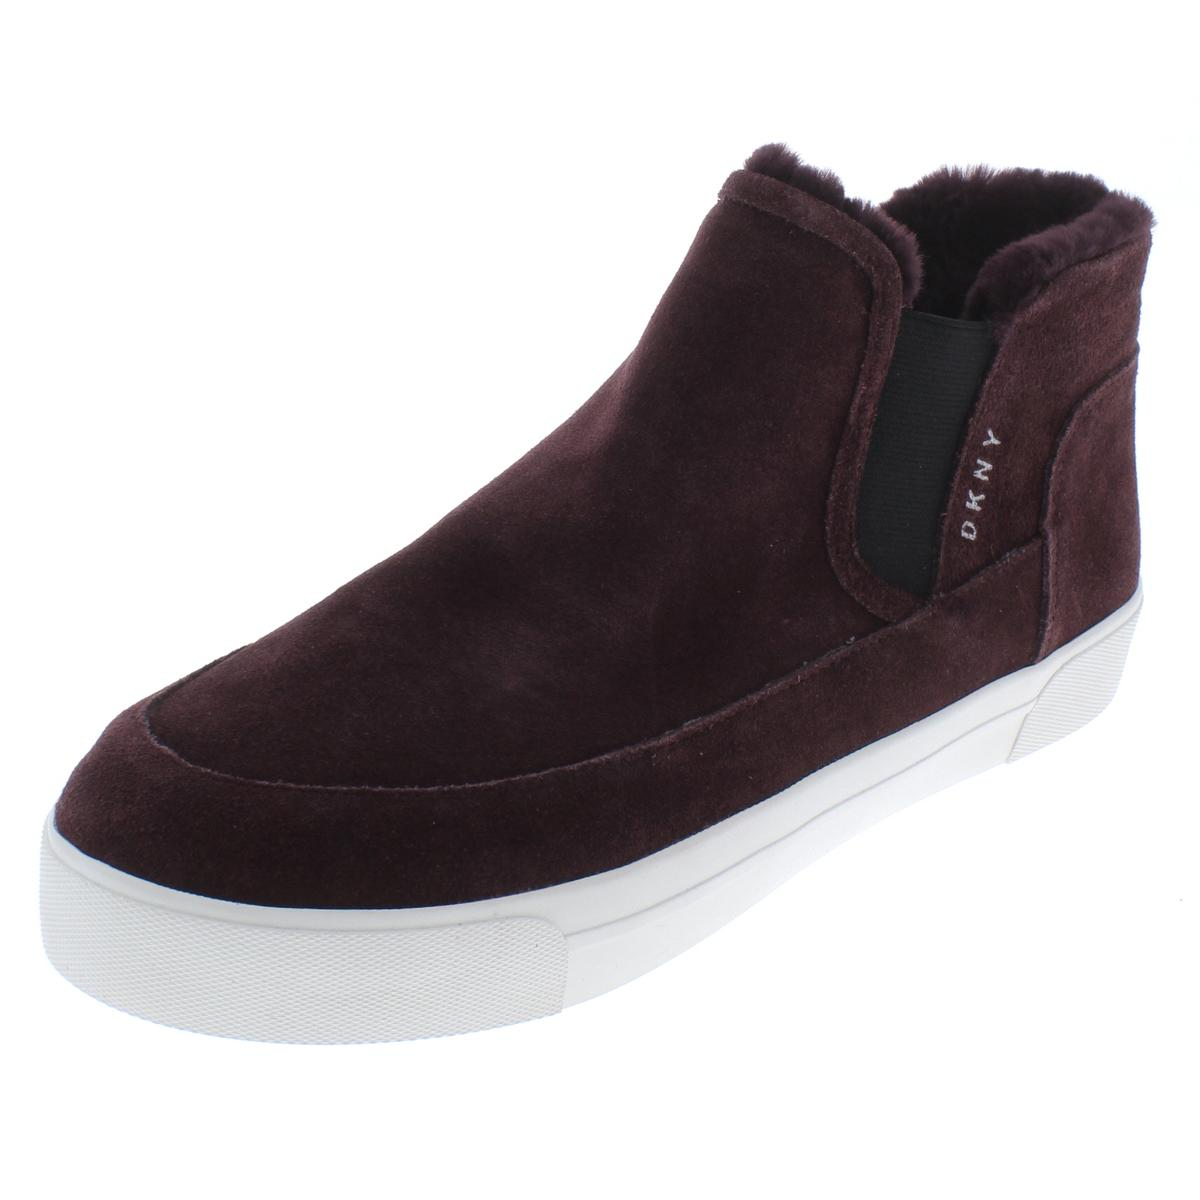 DKNY DKNY DKNY Damenschuhe Bessie Suede High Top Round Toe Casual Schuhes Sneakers BHFO 4759 05a2eb